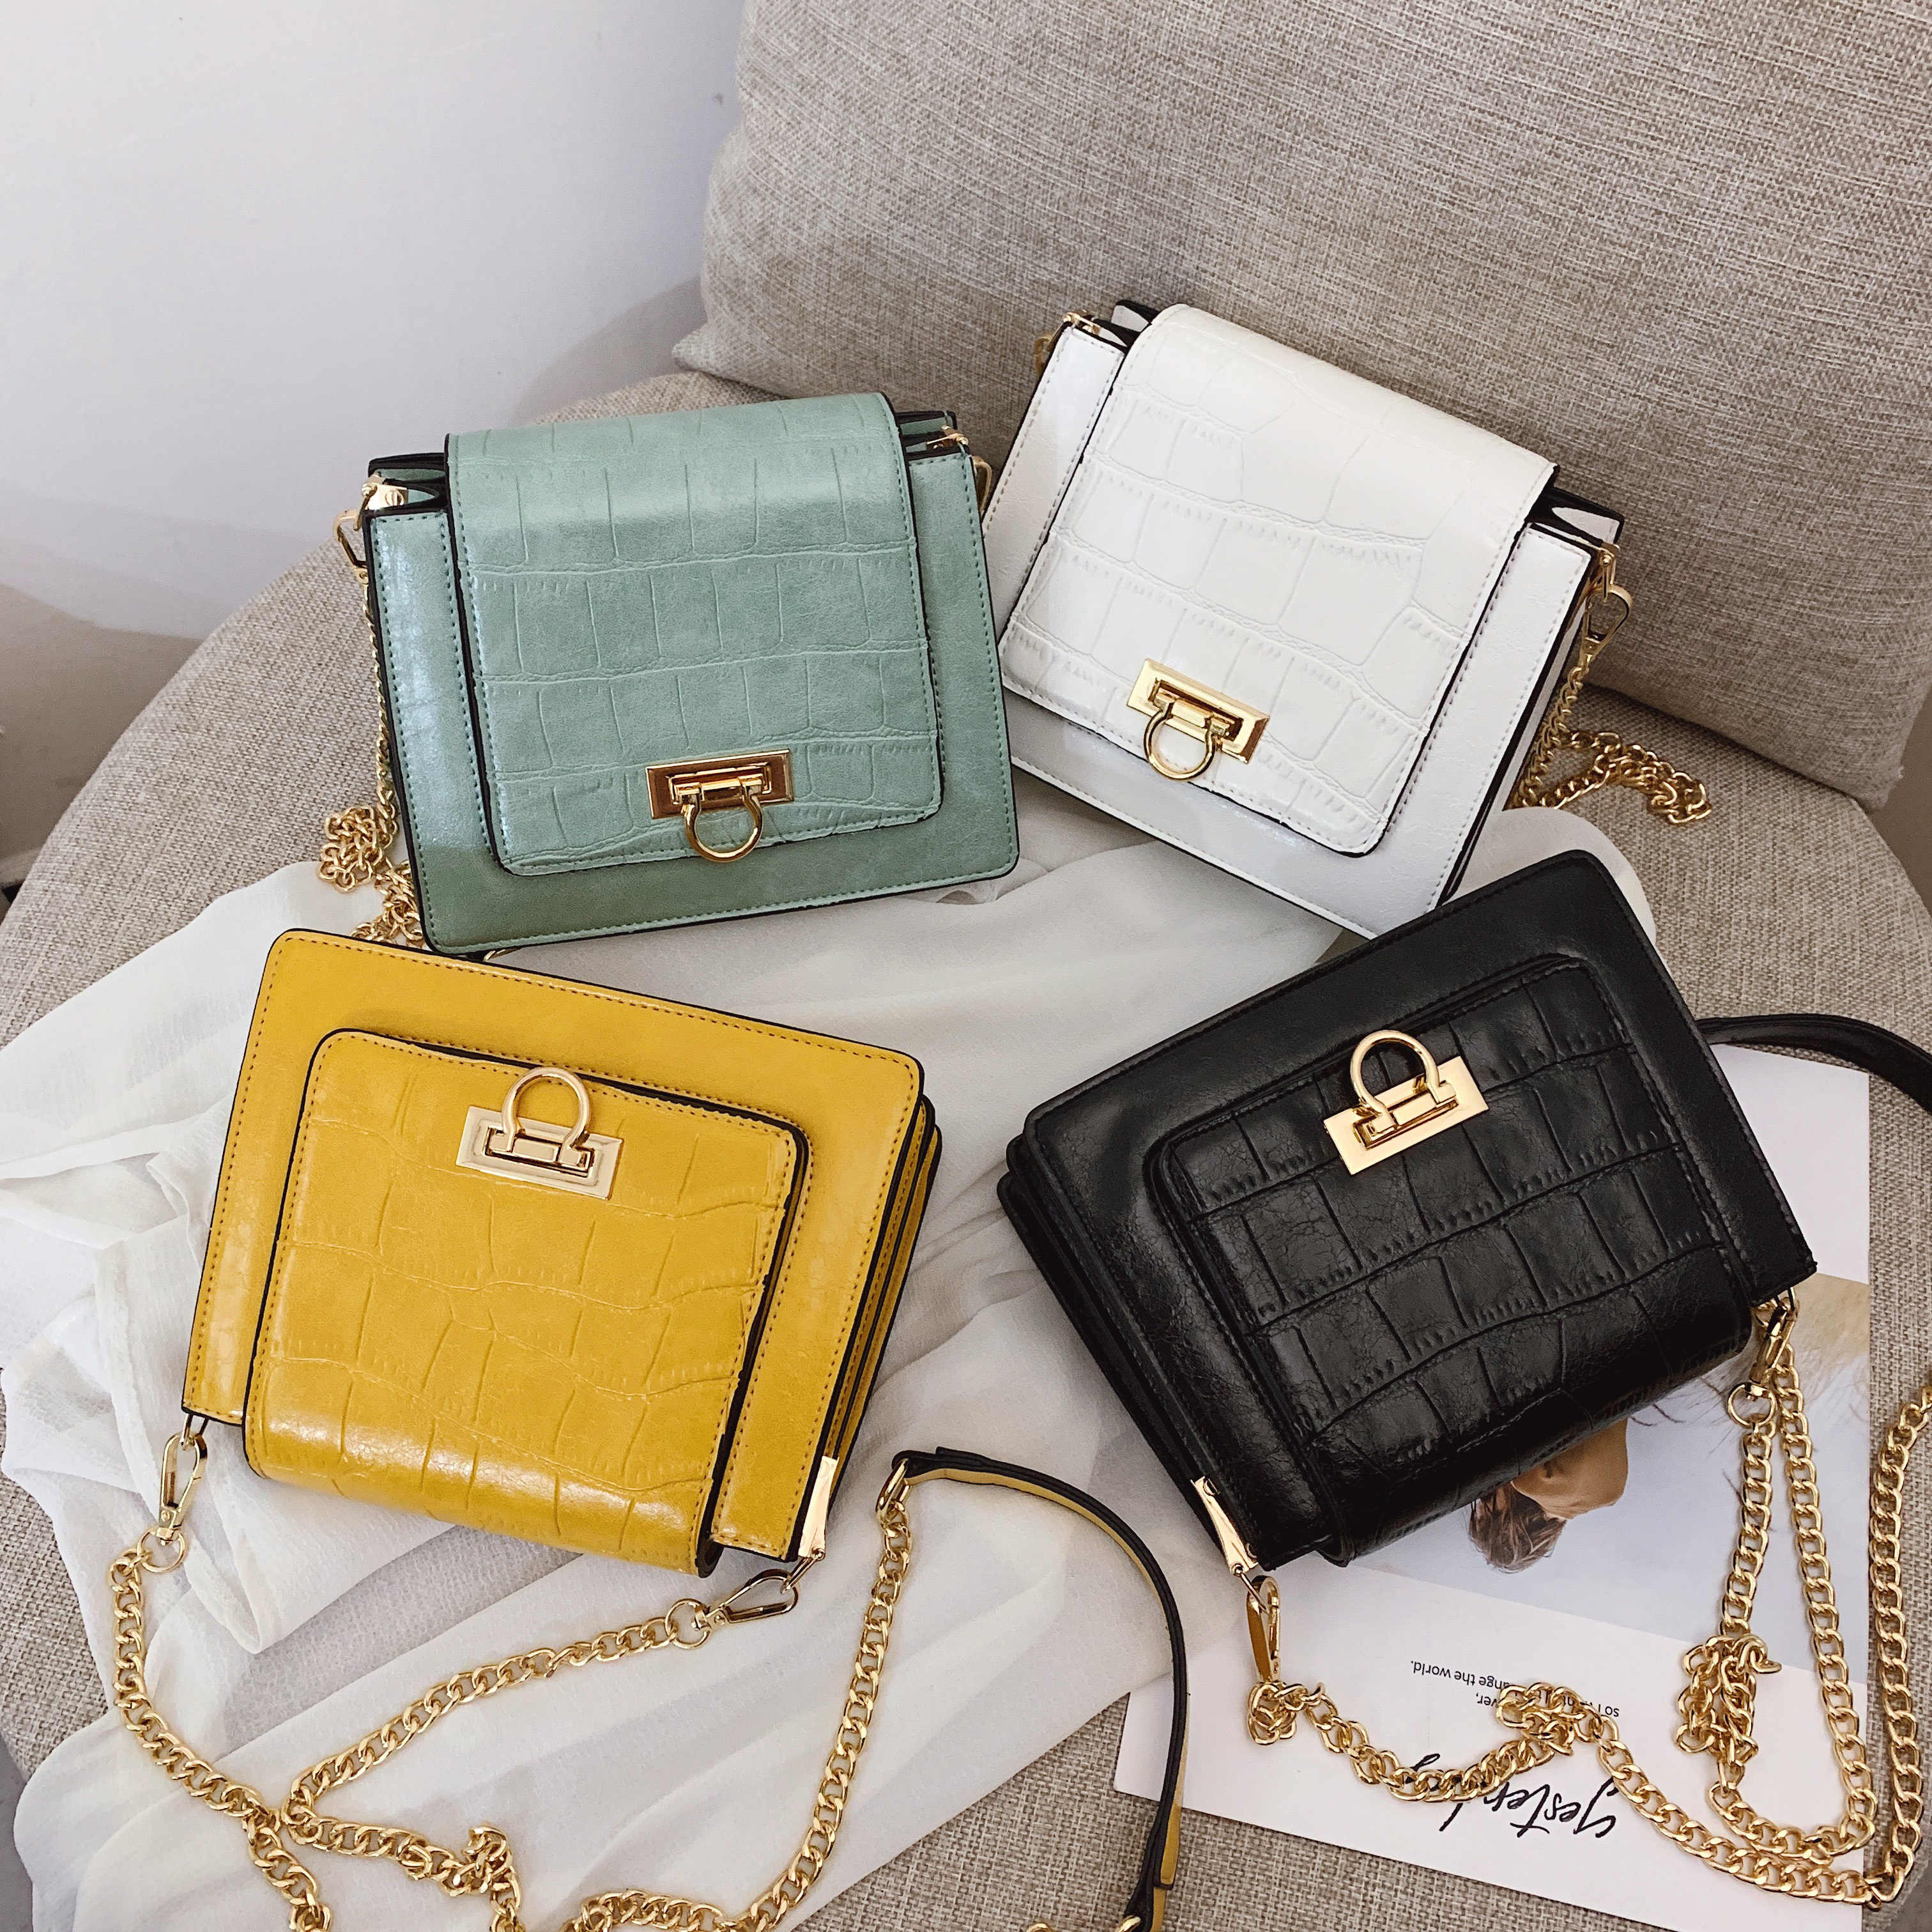 90ee8cad42d Luxury Design Stone Pattern PU Leather Crossbody Bags For Women 2019 Small  Shoulder Messenger Bag Travel Purses and Handbags